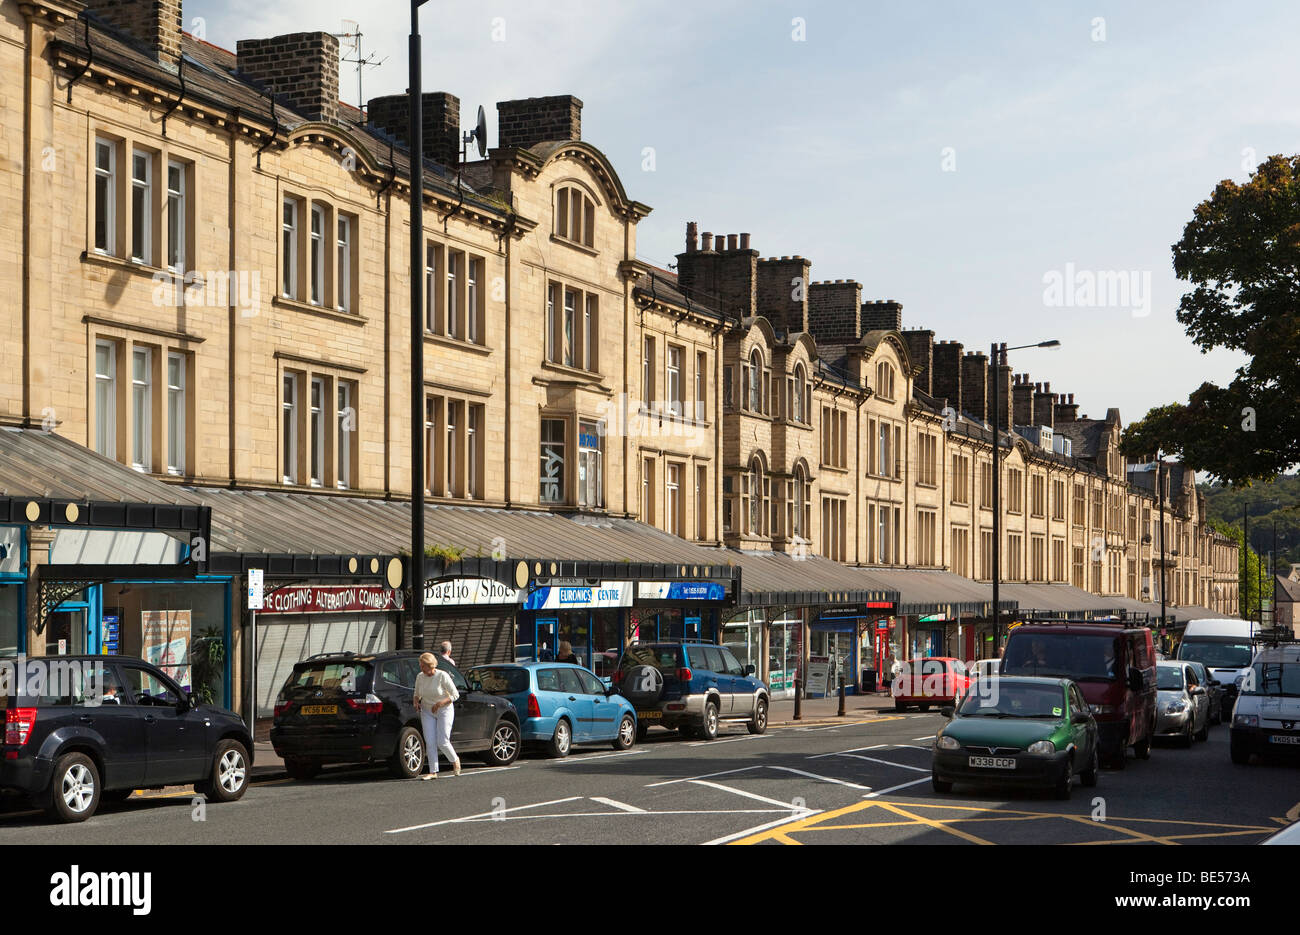 UK England Yorkshire Keighley Cavendish Street long terrace of Victorian commercial buildings with canopy & UK England Yorkshire Keighley Cavendish Street long terrace ...